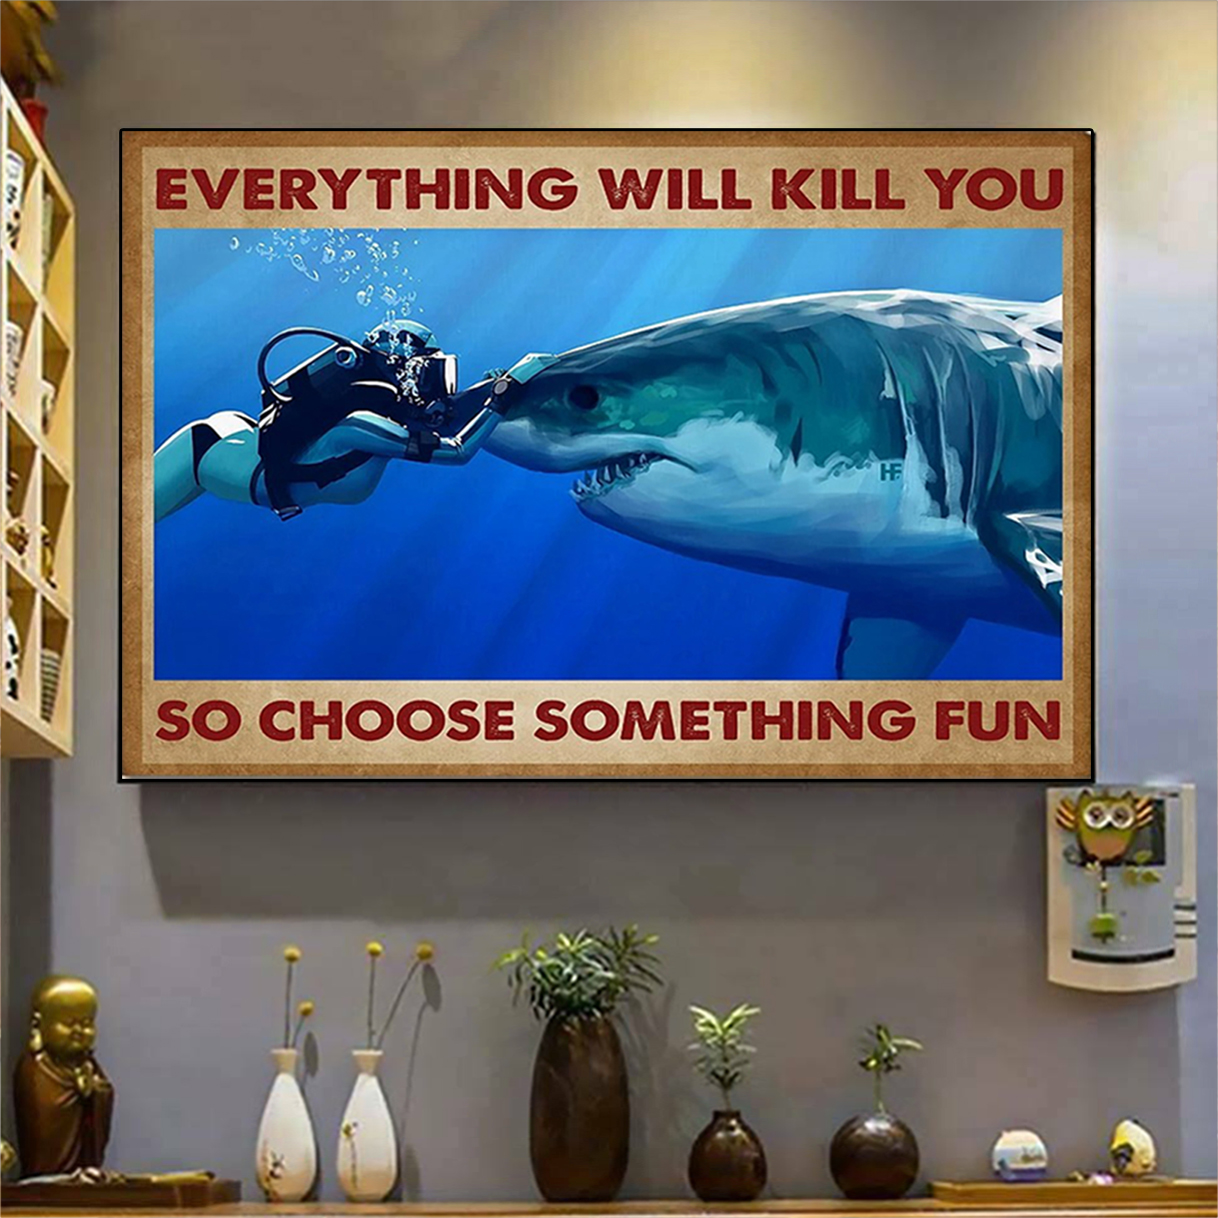 Scuba diving shark everything will kill you so choose something fun canvas prints large